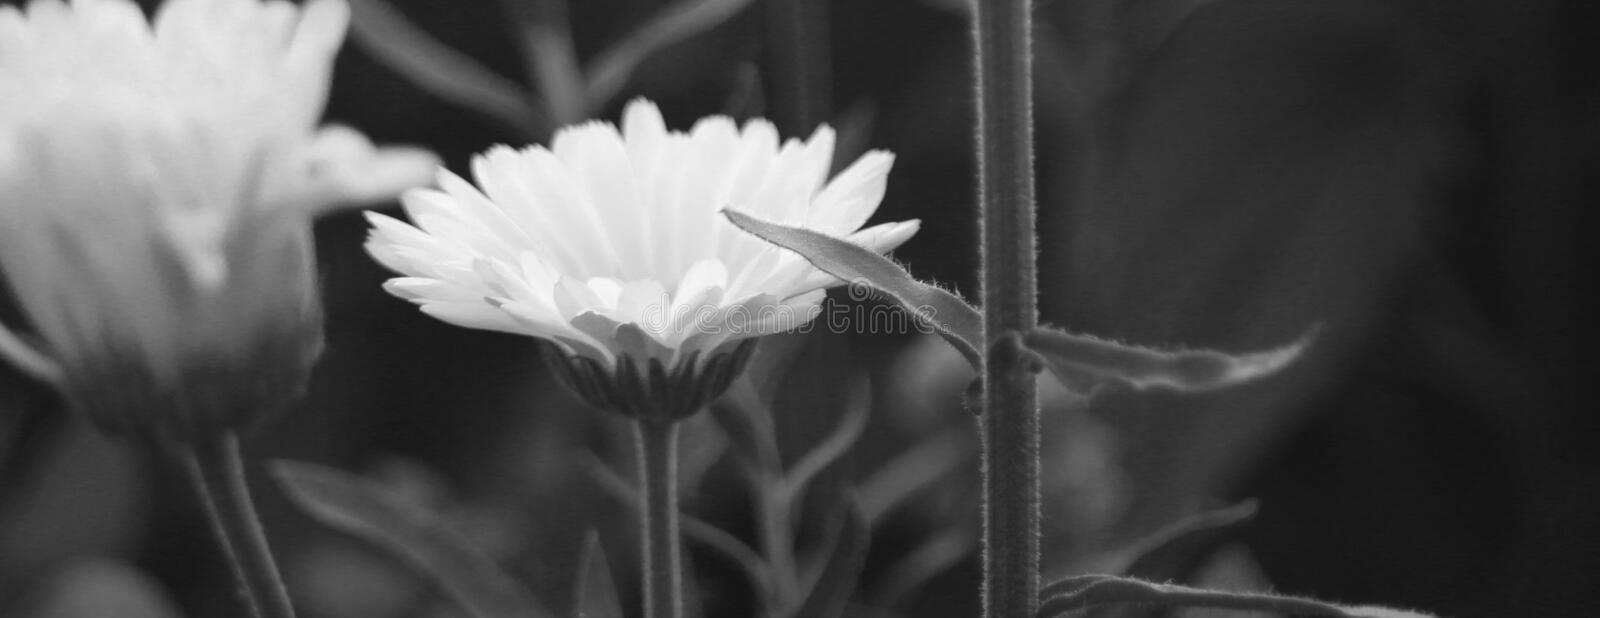 A close up and horizontally elongated black and white photo of flowers, the green leaves and stems royalty free stock image